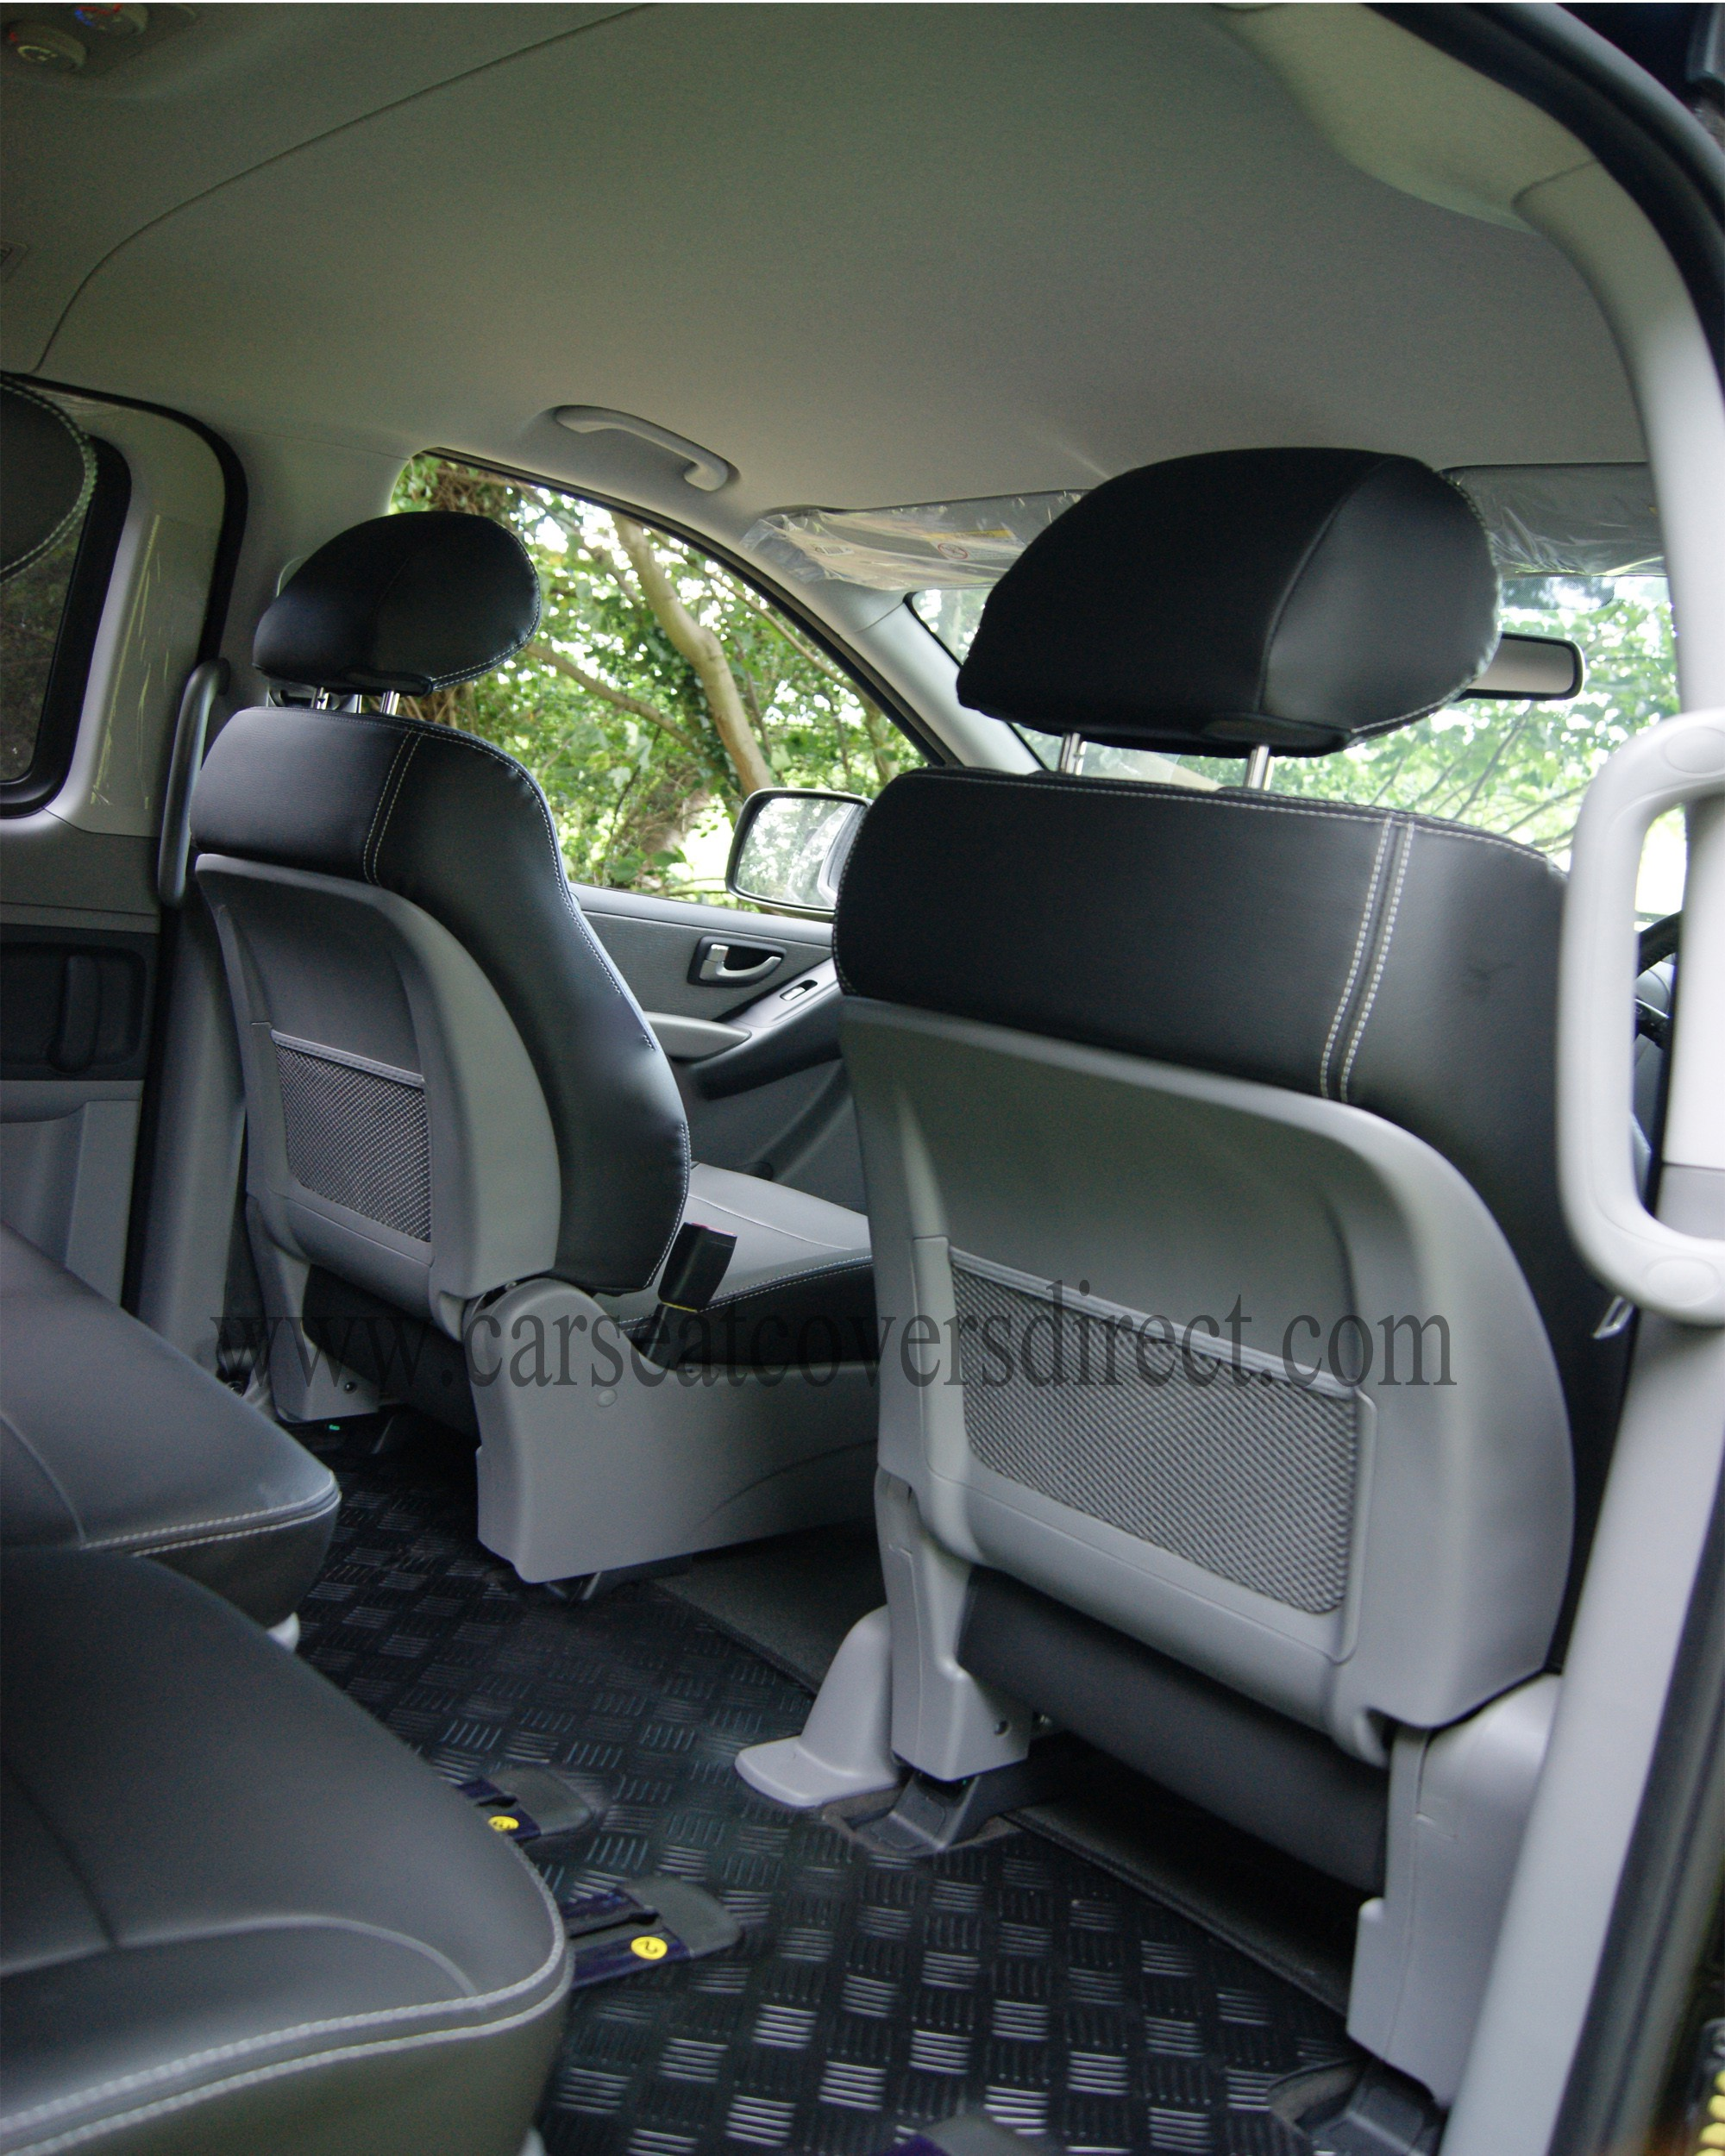 Mercedes Van Camper >> HYUNDAI I800 Waterproof Tailored Car Seat Covers Car Seat Covers Direct - Tailored To Your Choice